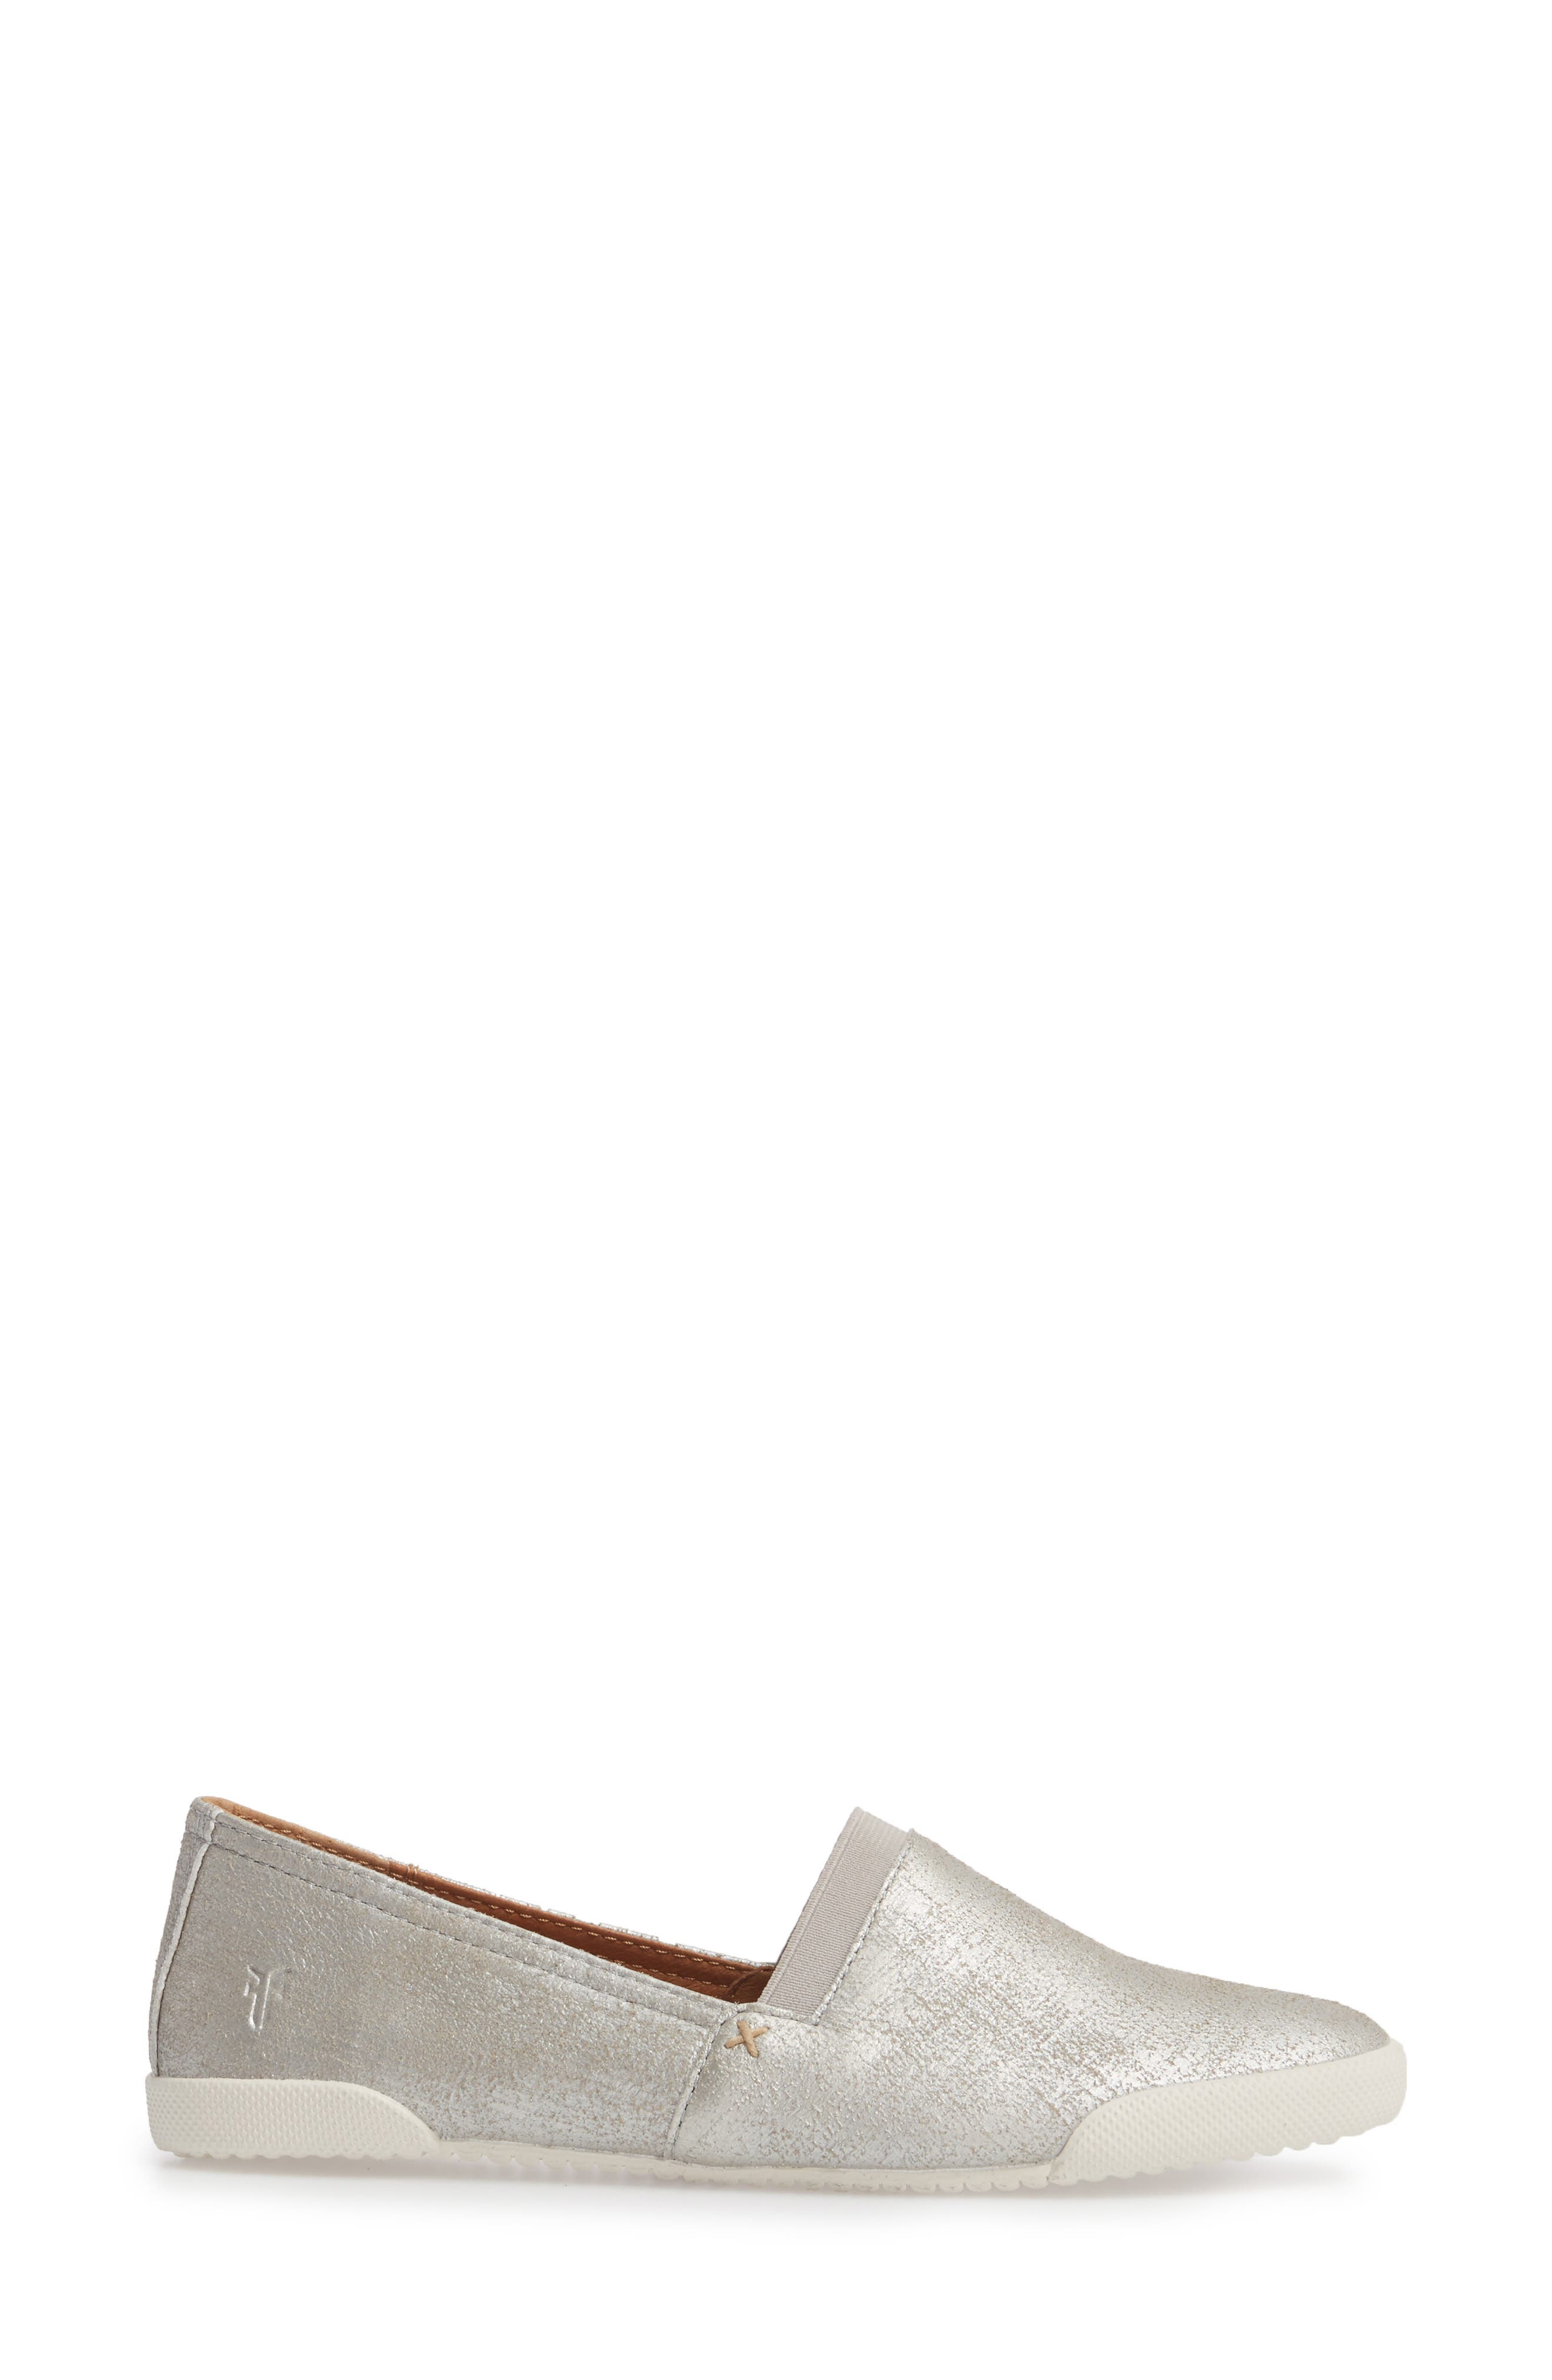 FRYE, 'Melanie' Slip-On, Alternate thumbnail 3, color, SILVER